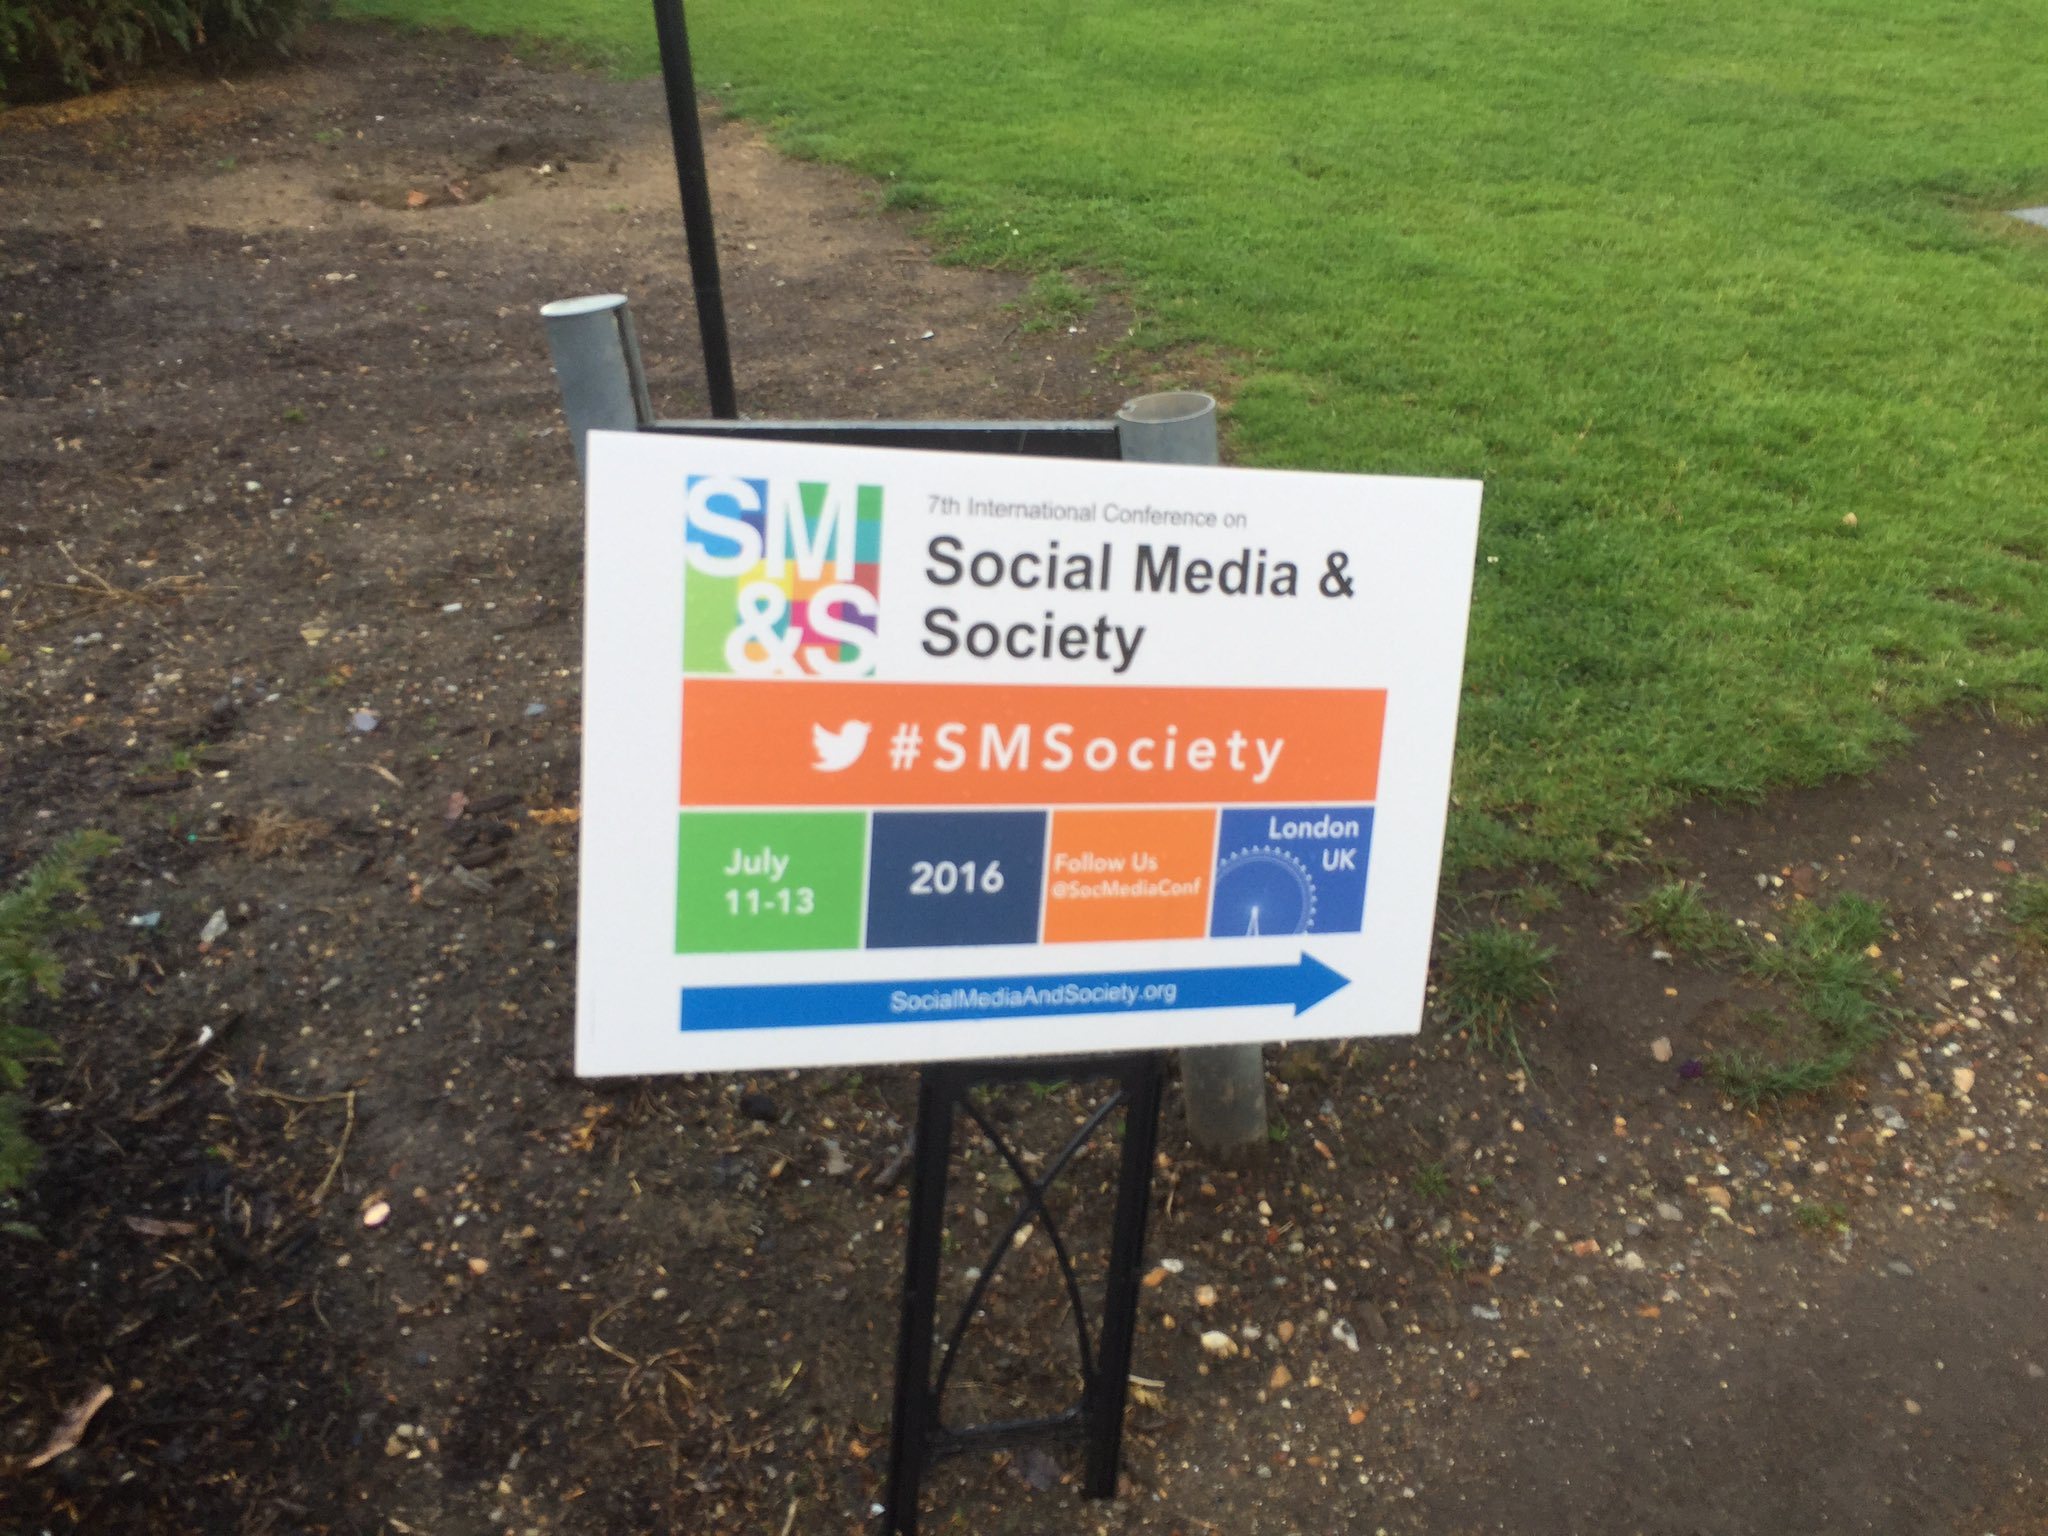 Day 3 (Last day) 💔 #SMSociety https://t.co/igTMMjrfpO